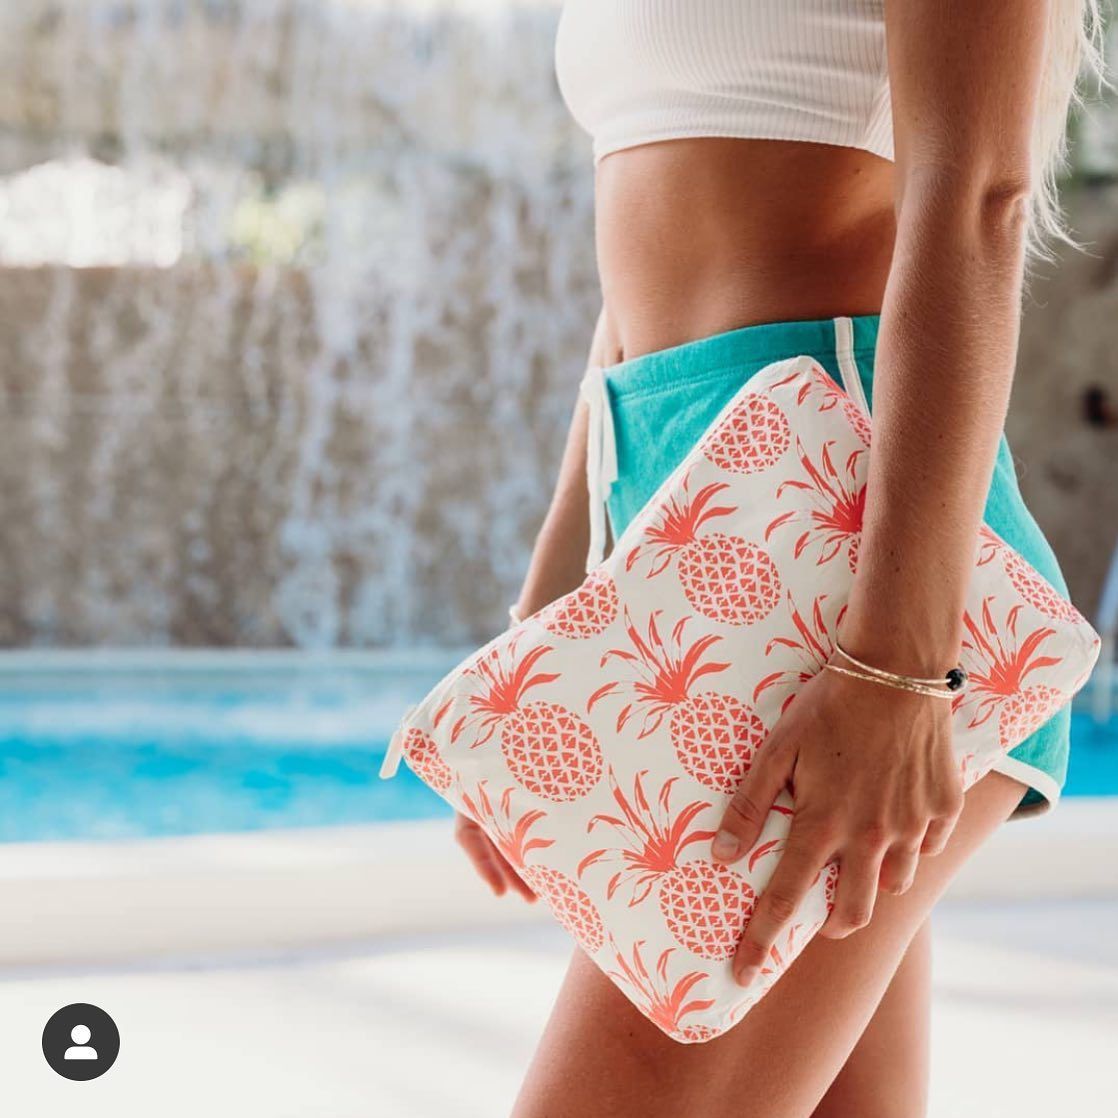 We're going bananas for our @alohacollection collab! Piña Sola pouches are now available on aimeewilder.com 🍉🍌 #aimeewilder #alohacollection #travelcases #pineapple